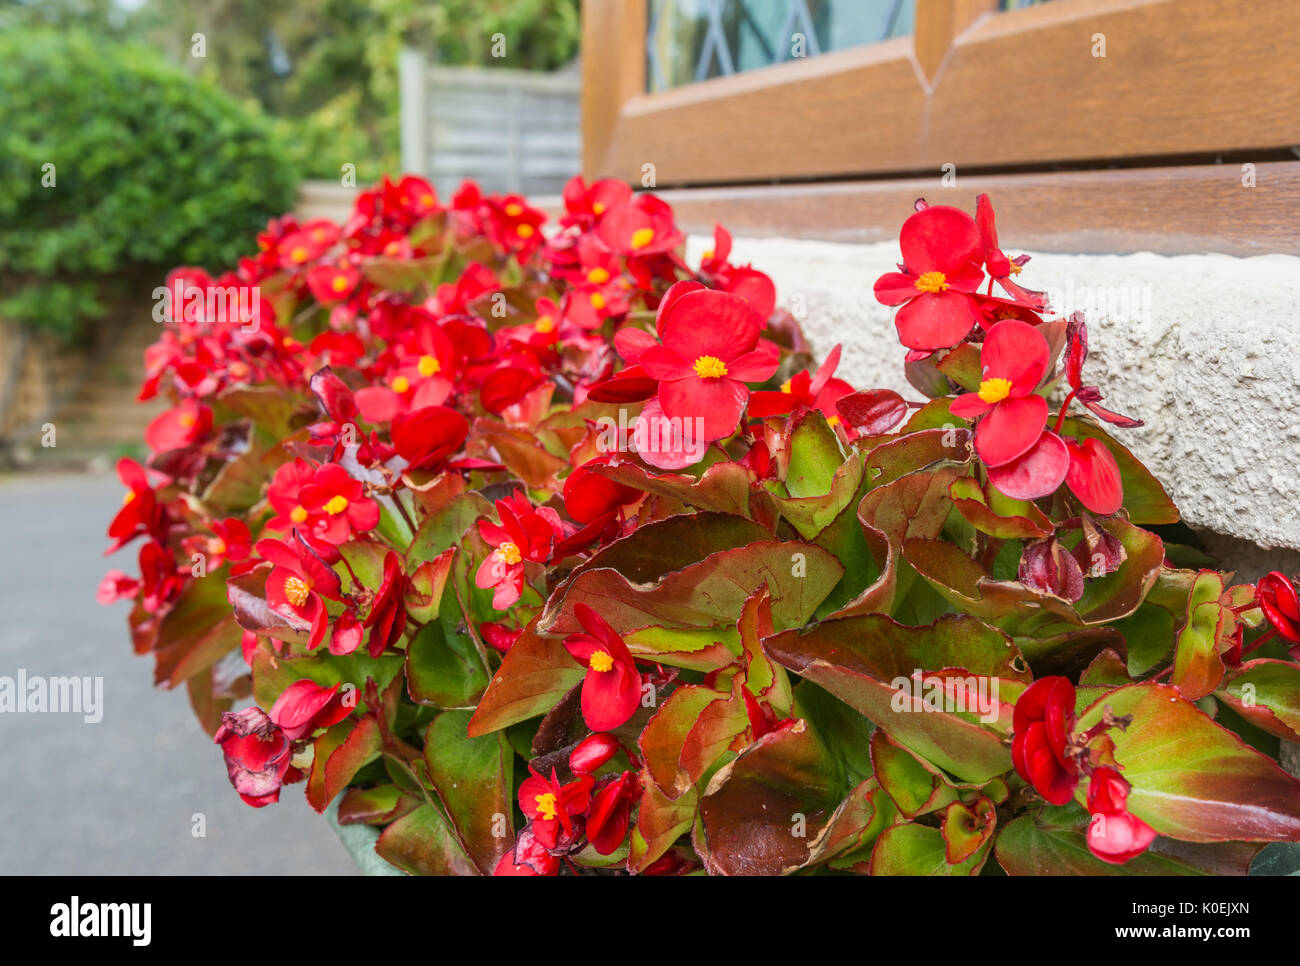 Wax Begonia plant (Begonia semperflorens) bedding variety flowering in a flower box in mid Summer in West Sussex, Stock Photo